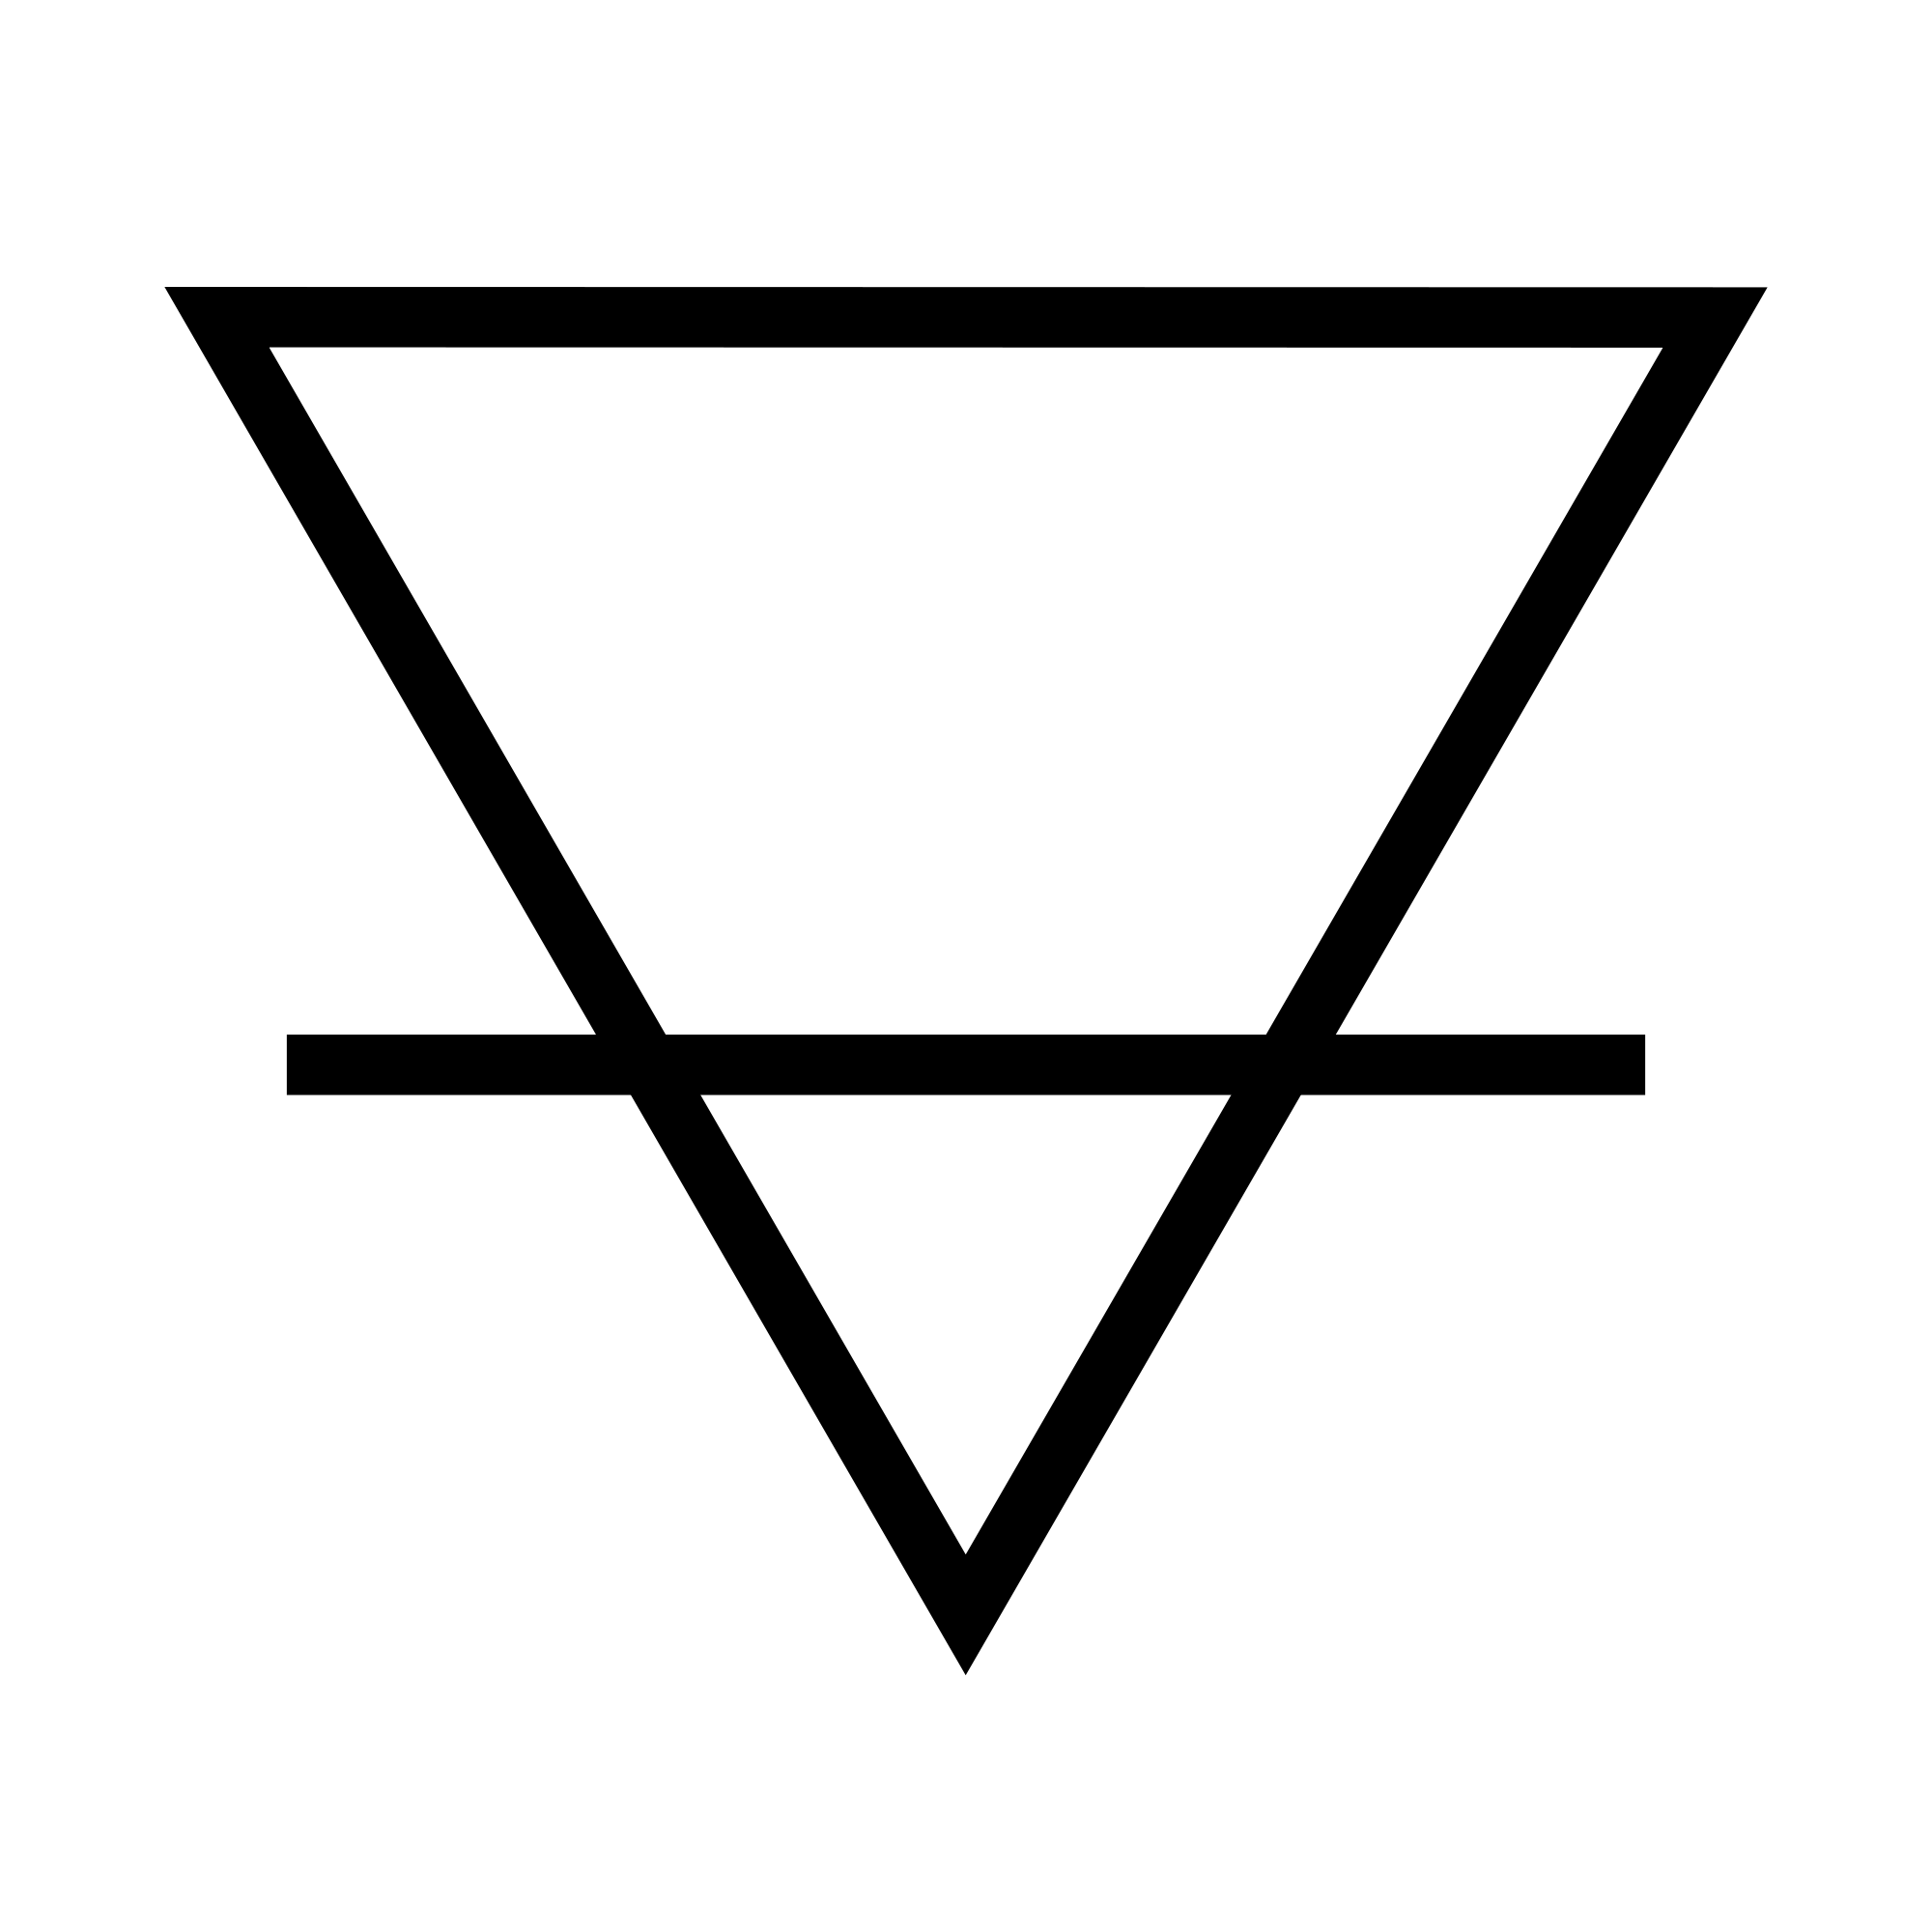 Alchemical symbol for Earth